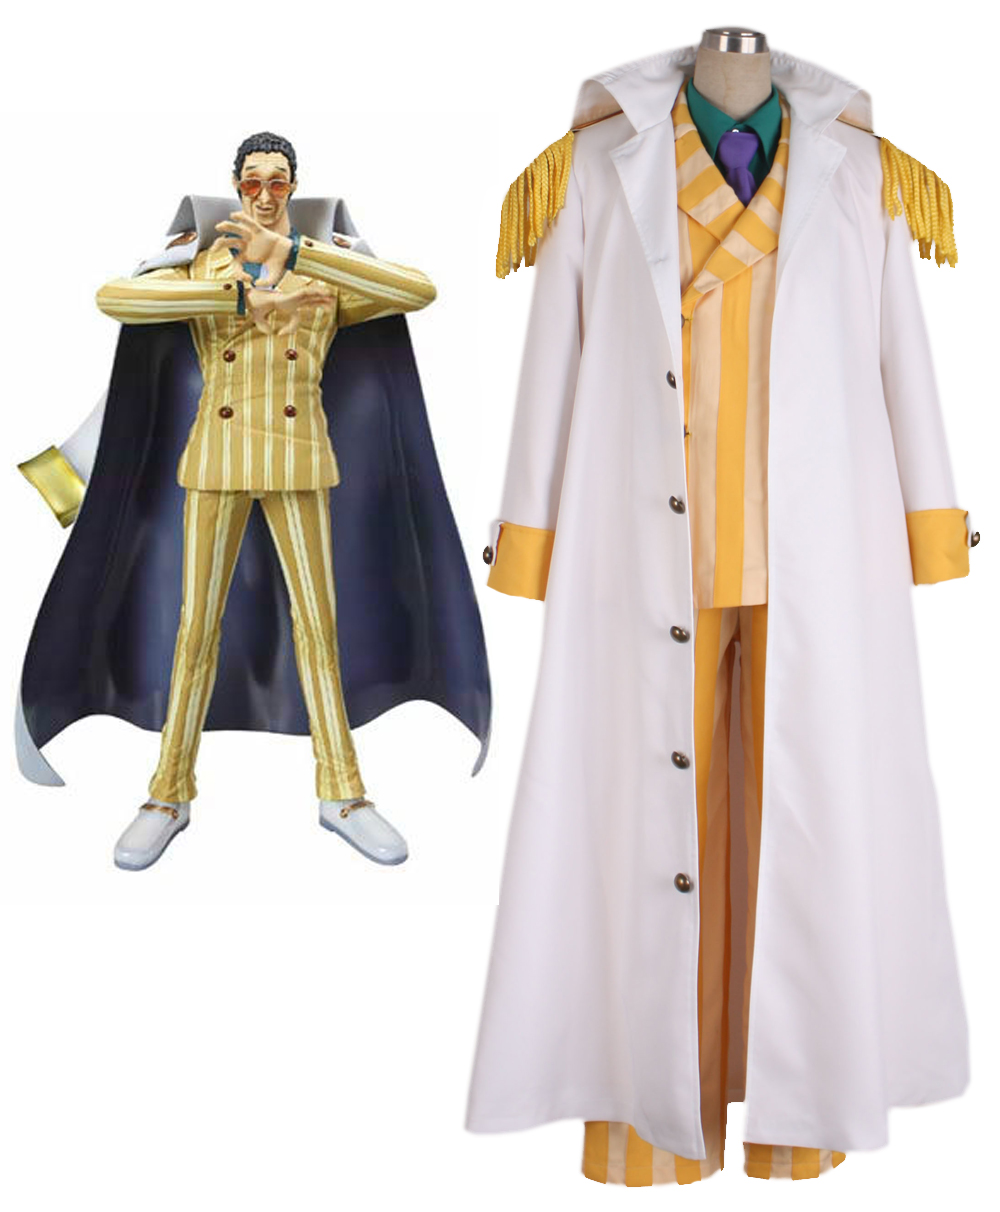 Japanese Hot Anime ONE PIECE cosplay Borsalino cos Halloween party man costume (cloak+coat+shirt+tie+pants)